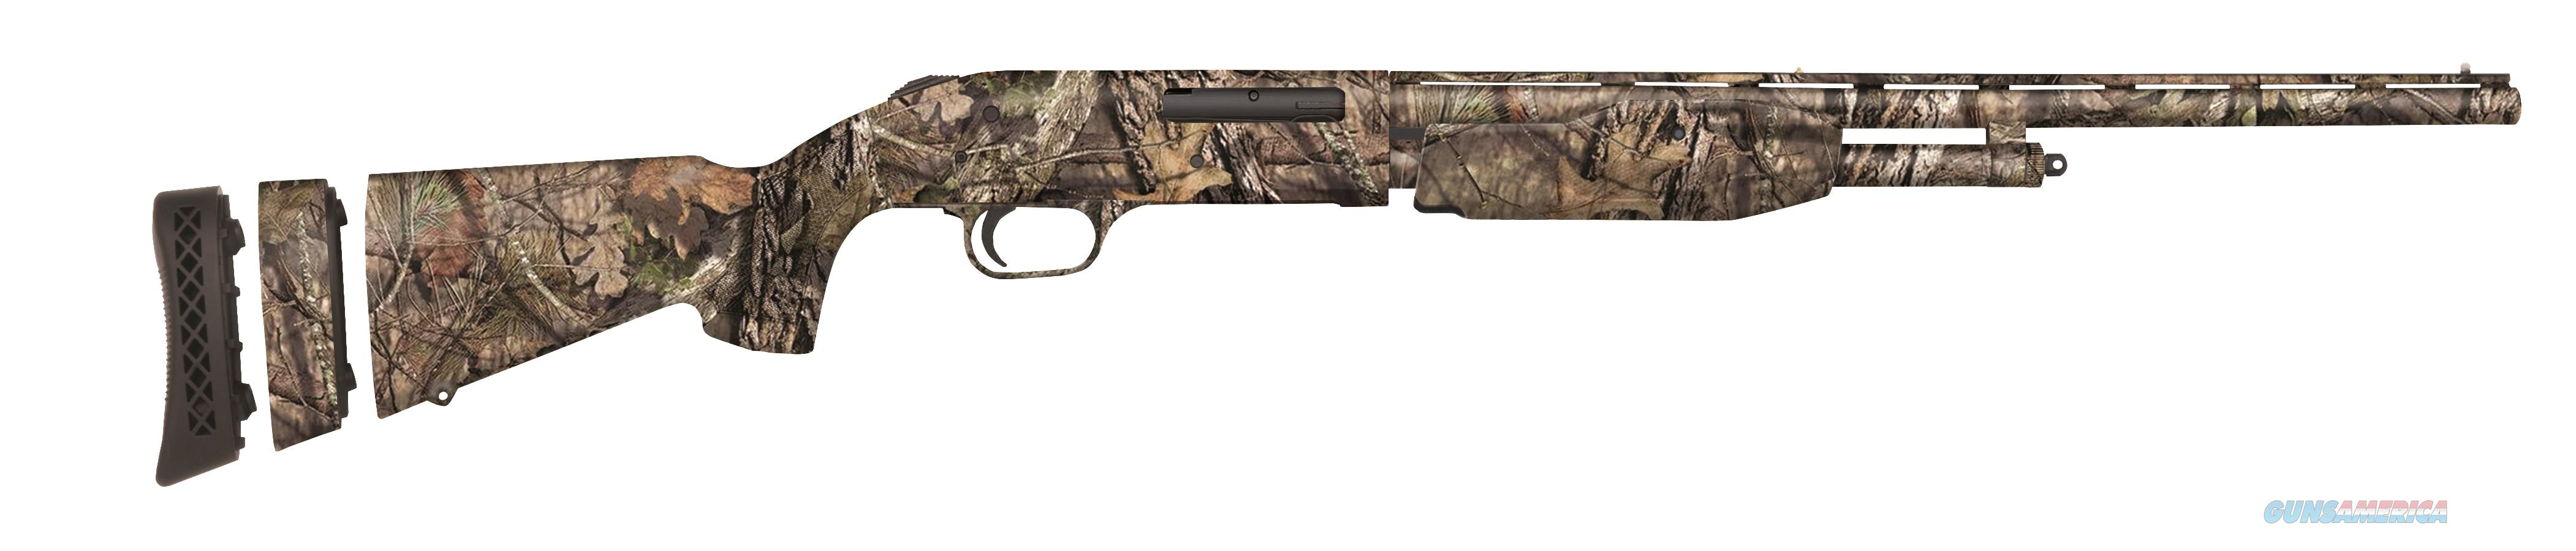 Mossberg 510 Youth Mini Super Bantam .410 Bore Mossy Oak 50355   Guns > Shotguns > Mossberg Shotguns > Pump > Sporting